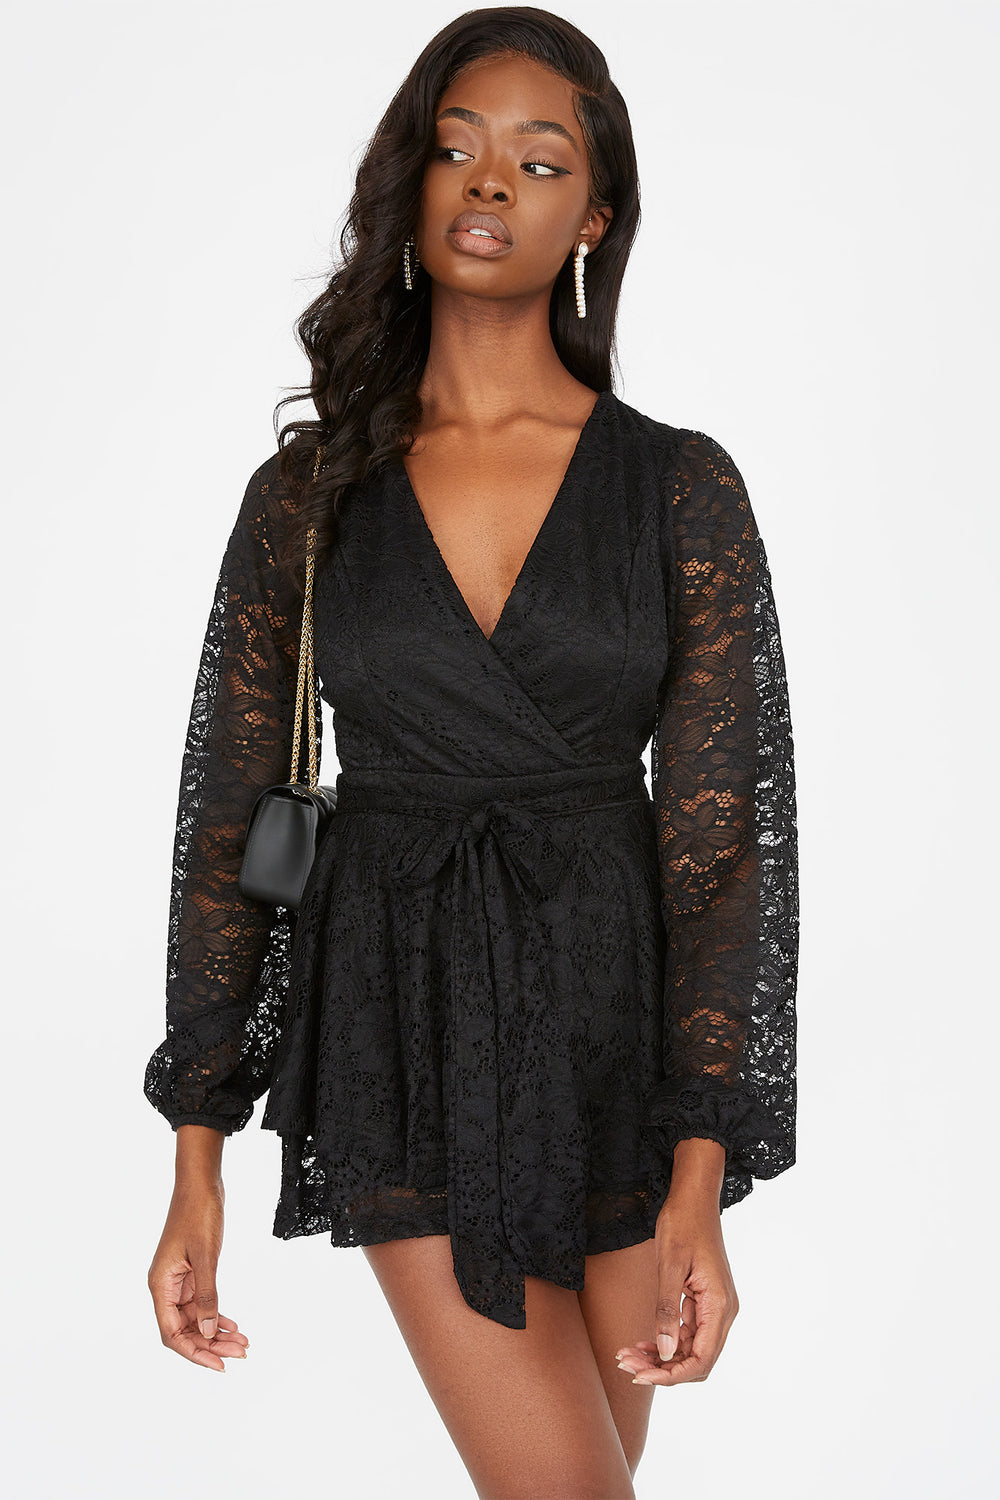 Lace Surplice Self-Tie Belted Romper Black